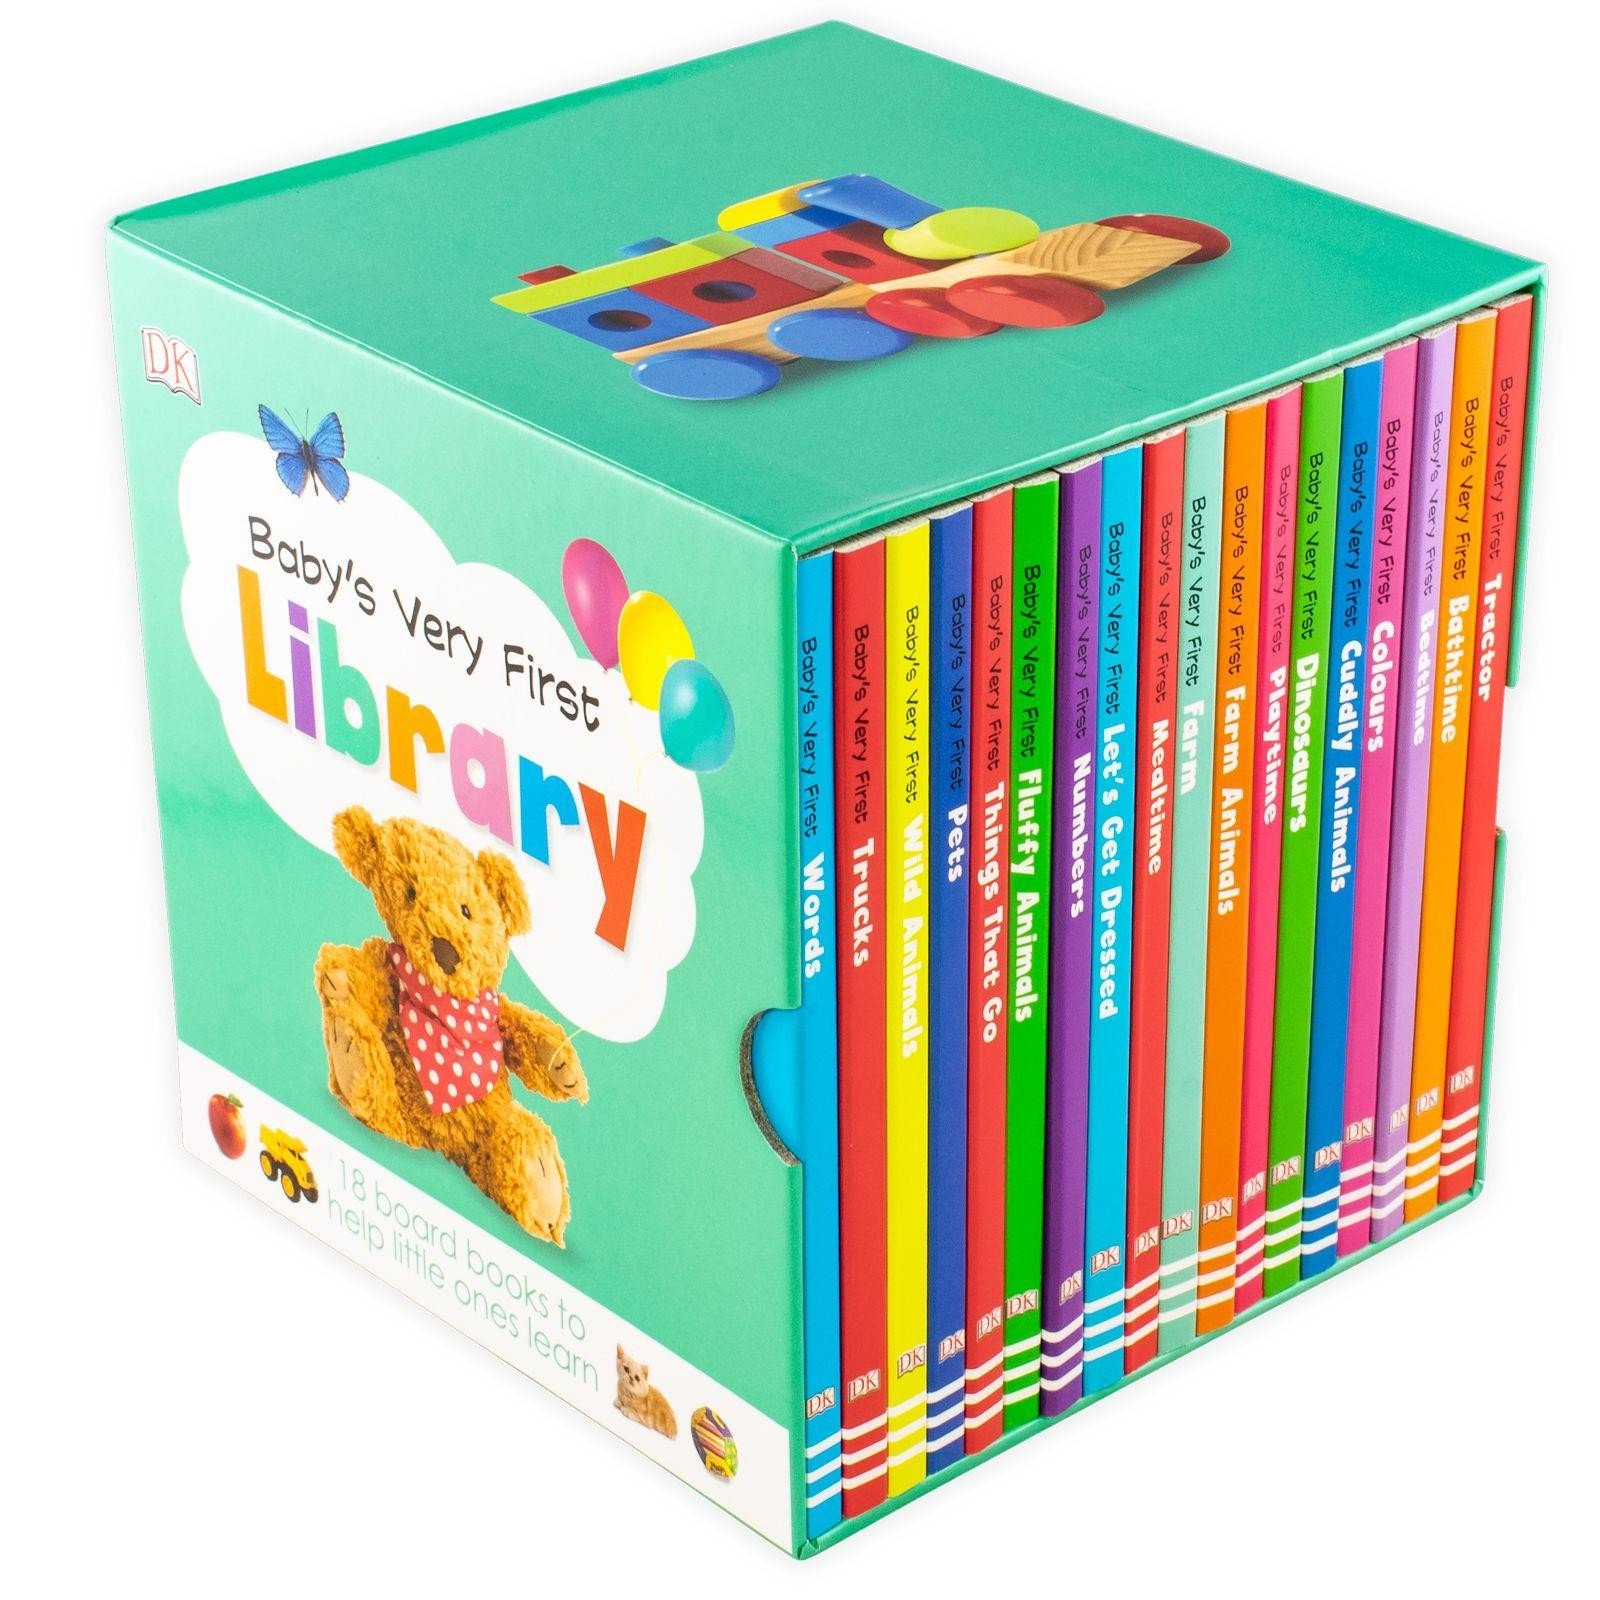 DK BABY'S VERY FIRST LIBRARY 18 BOARD BOOKS BOX SET